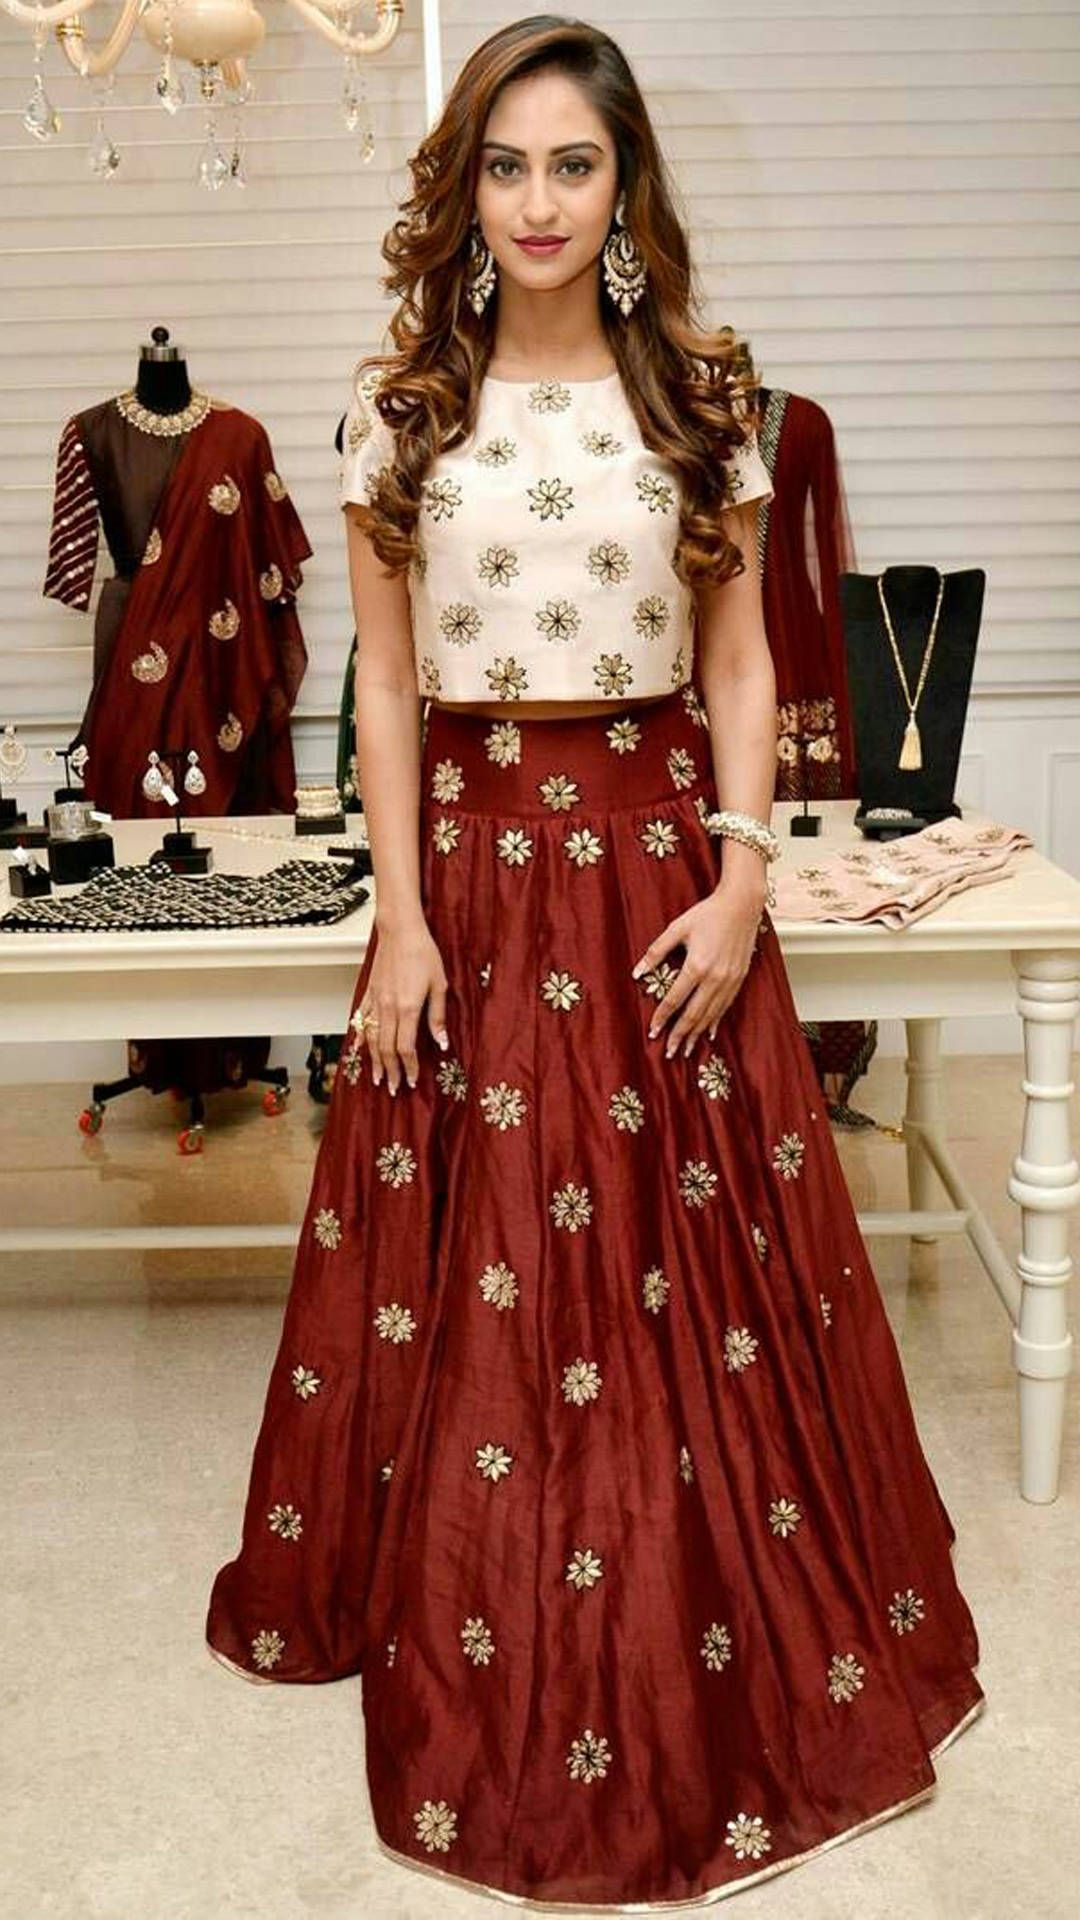 0eb168d51e Buy TodayBazar Maroon Georgette Unstitched Lehenga Online at Low Prices in  India - Paytm.com